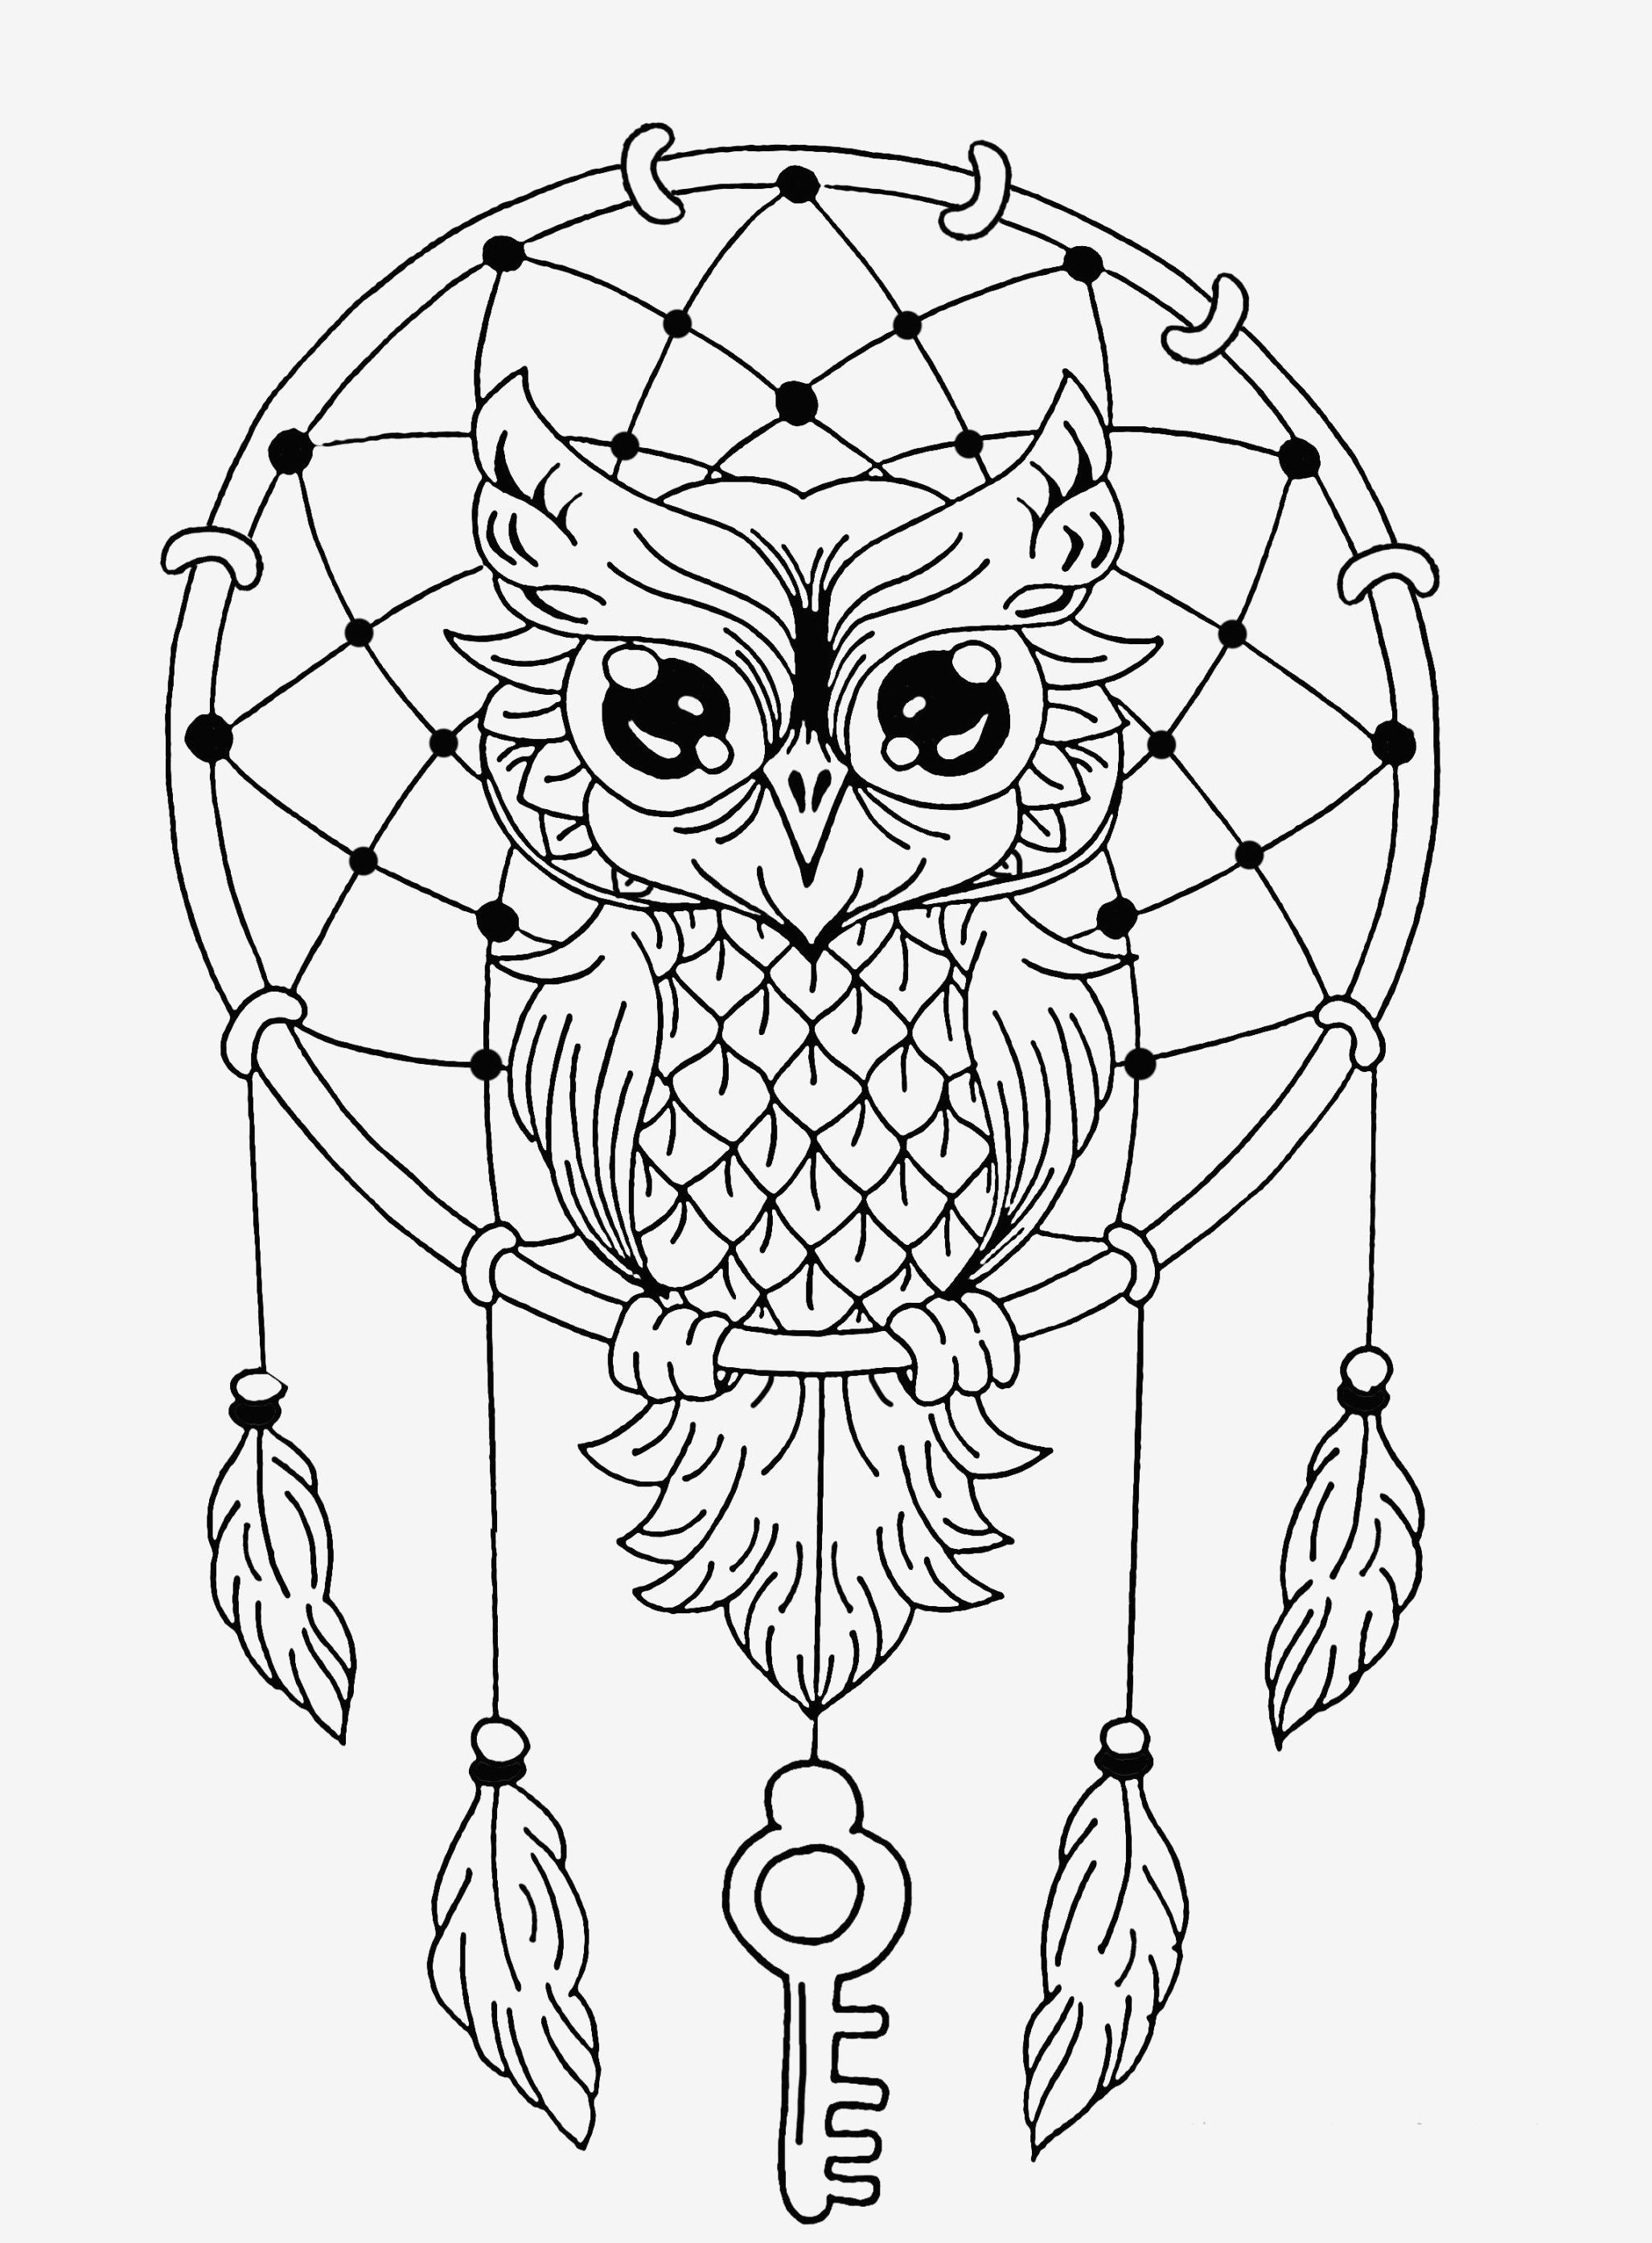 animal mandala coloring pages printable – from the thousands of